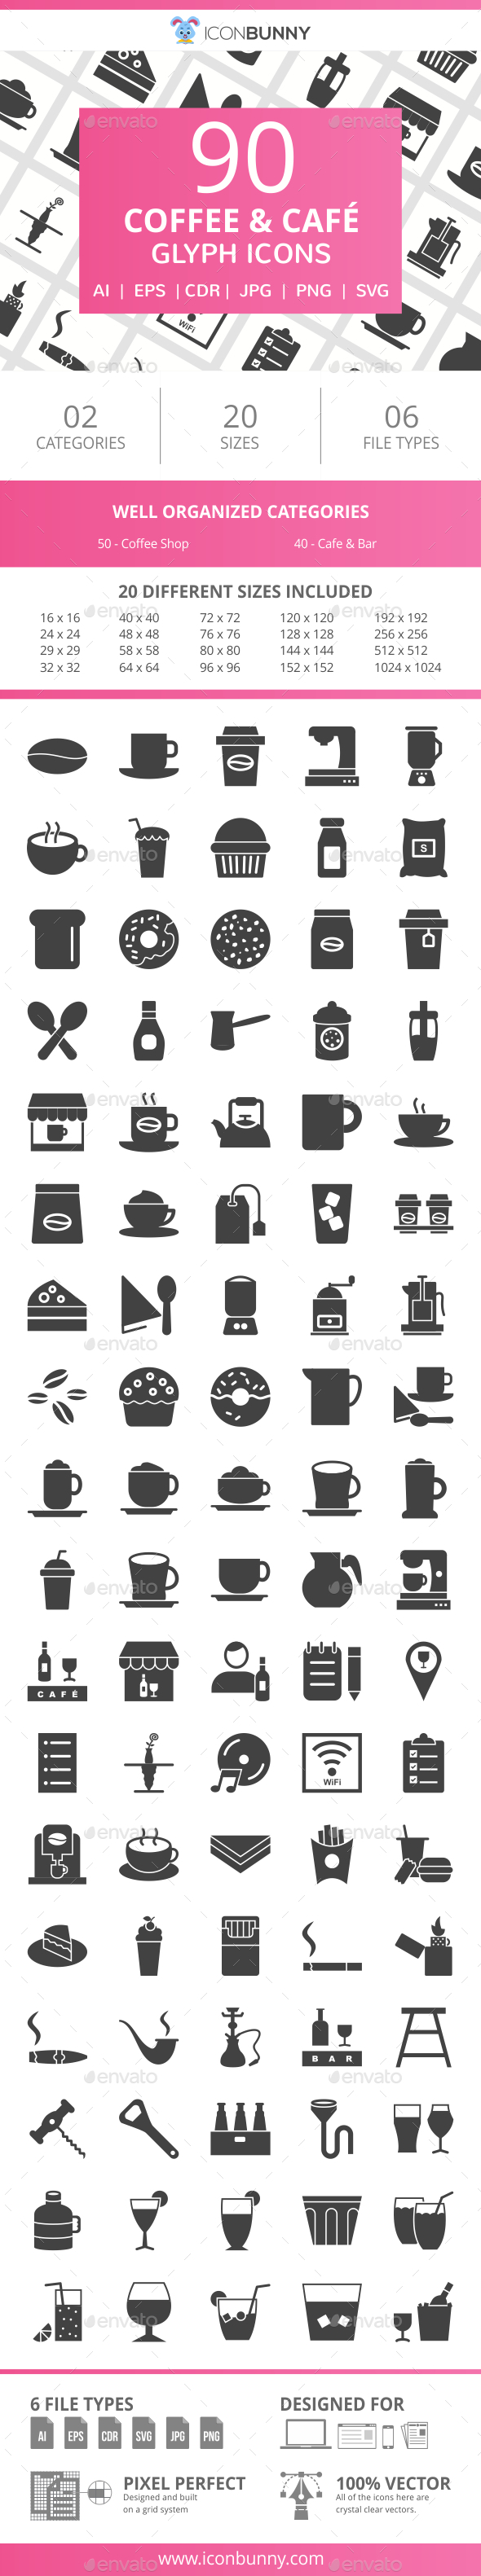 90 Coffee & Cafe Glyph Icons - Icons